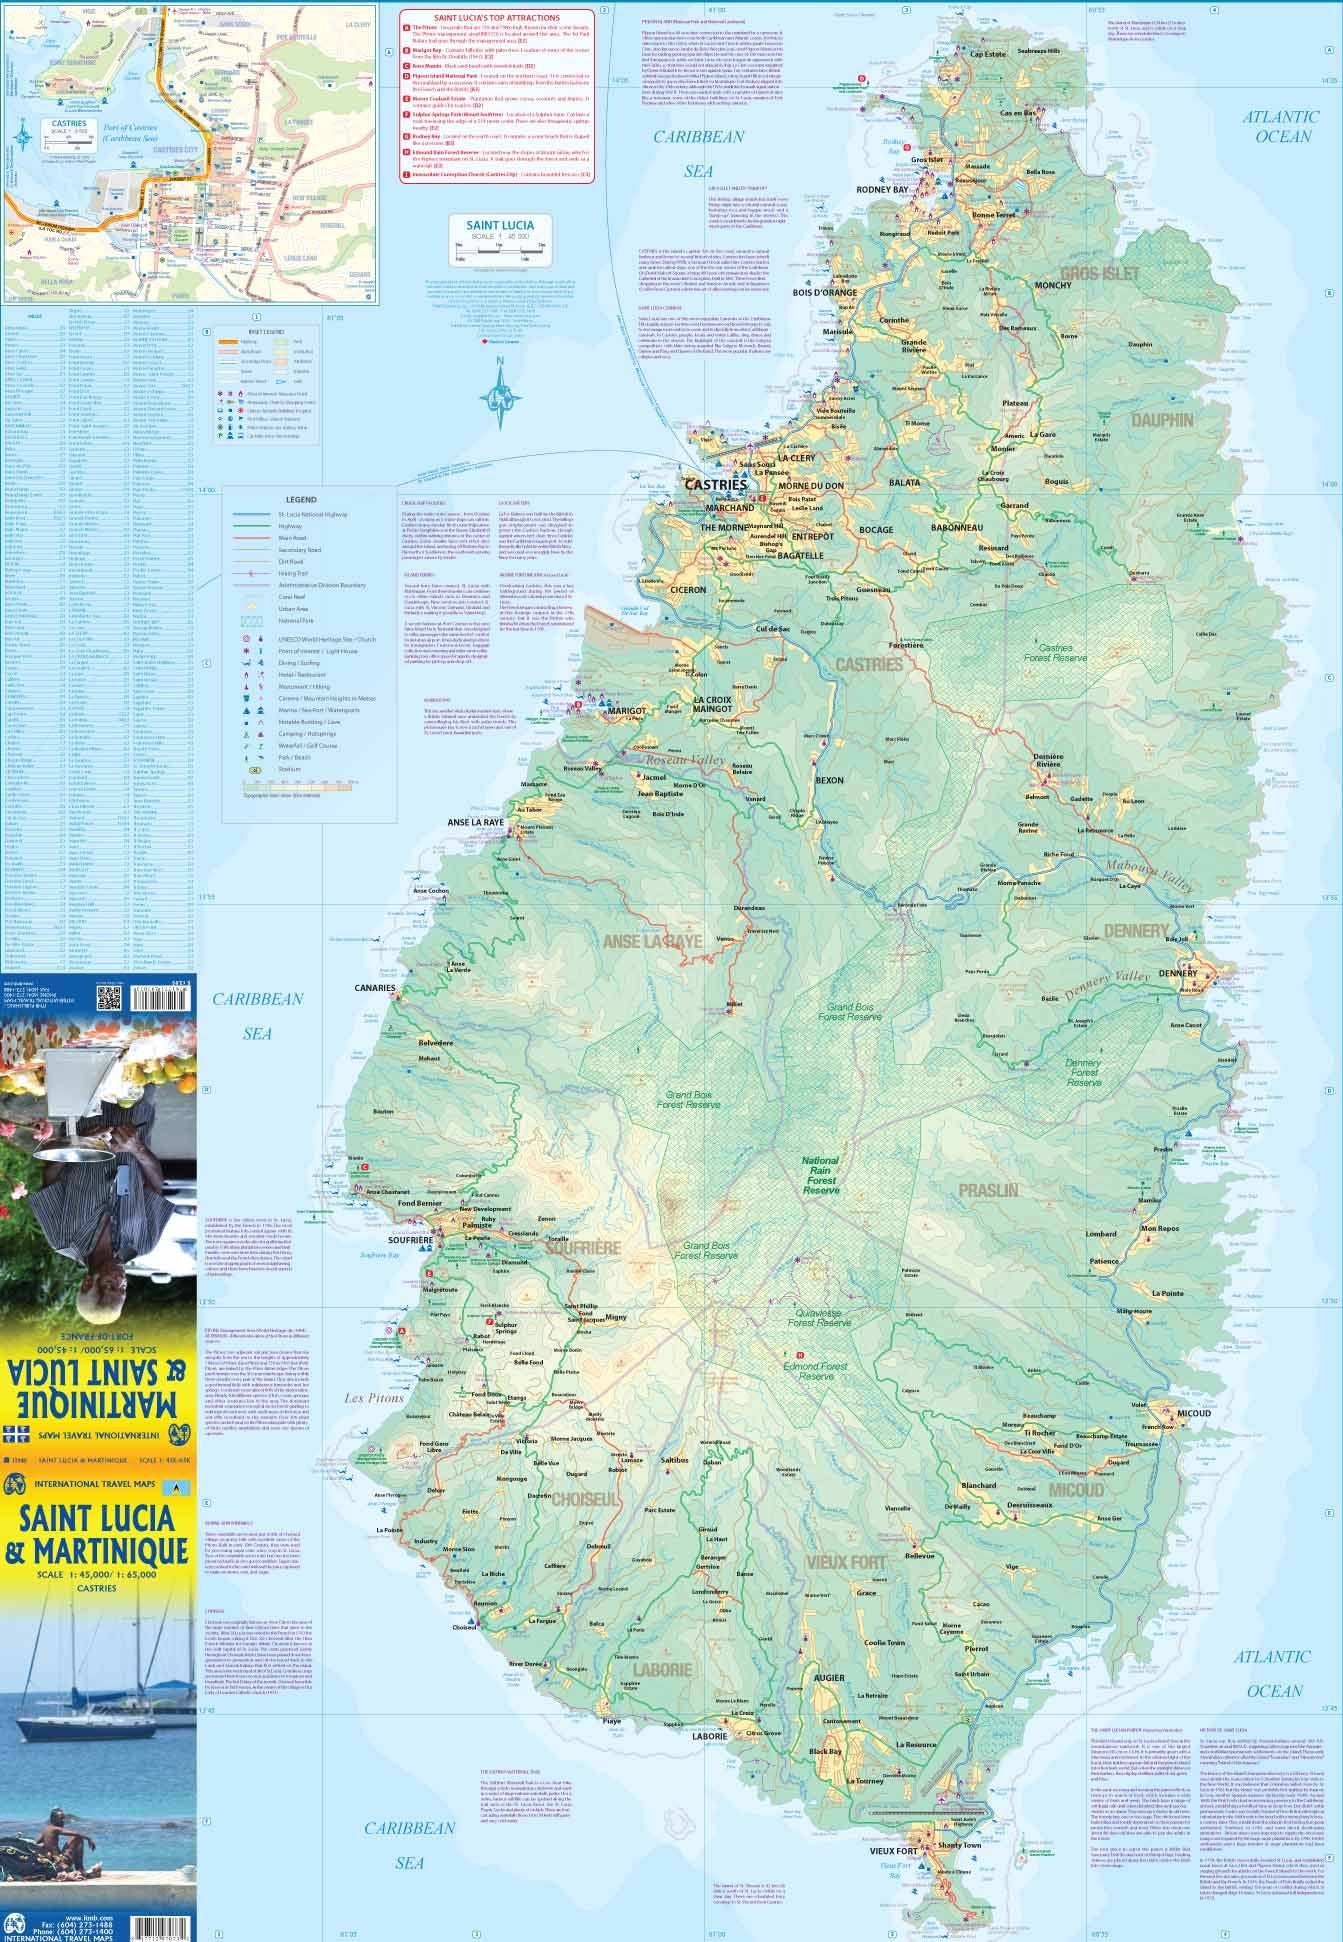 Saint Lucia & Martinique  ITM Travel Map 2e